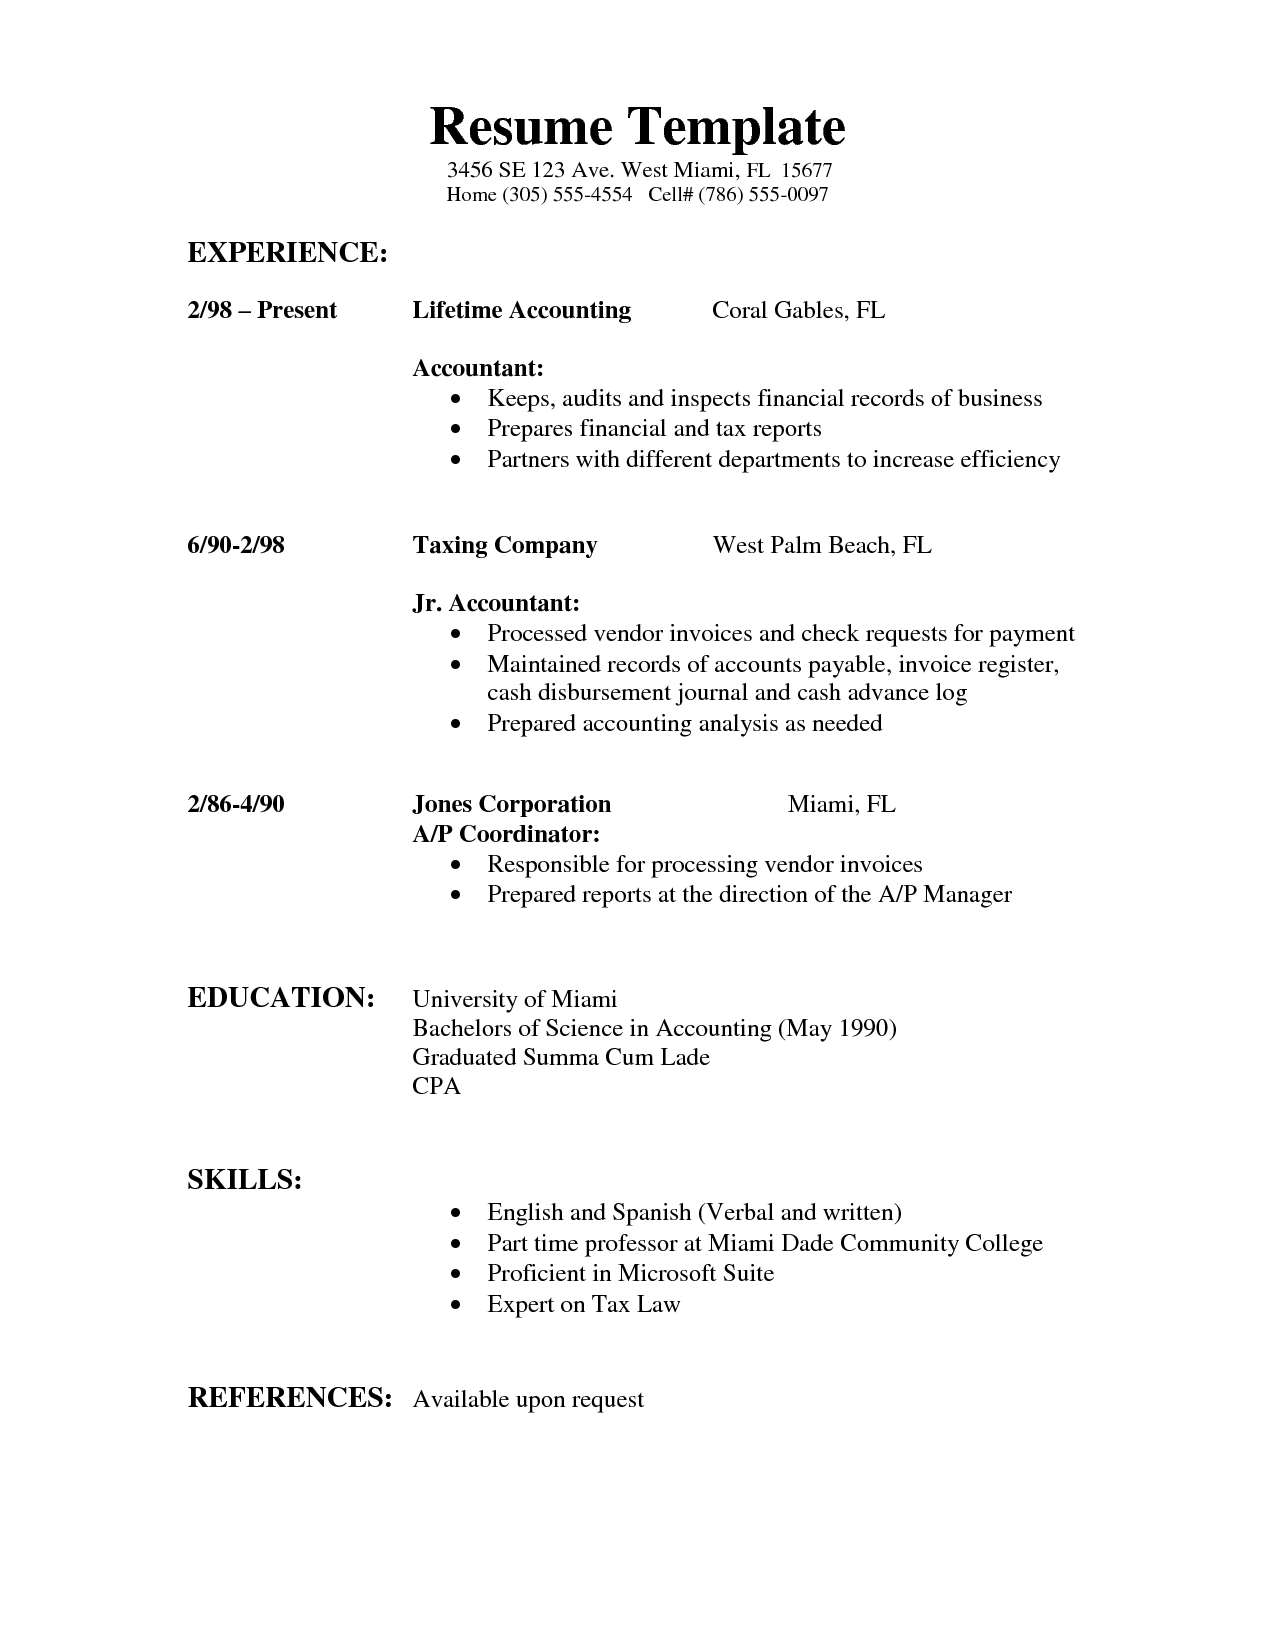 job resume government job resume template resume template job resume ...